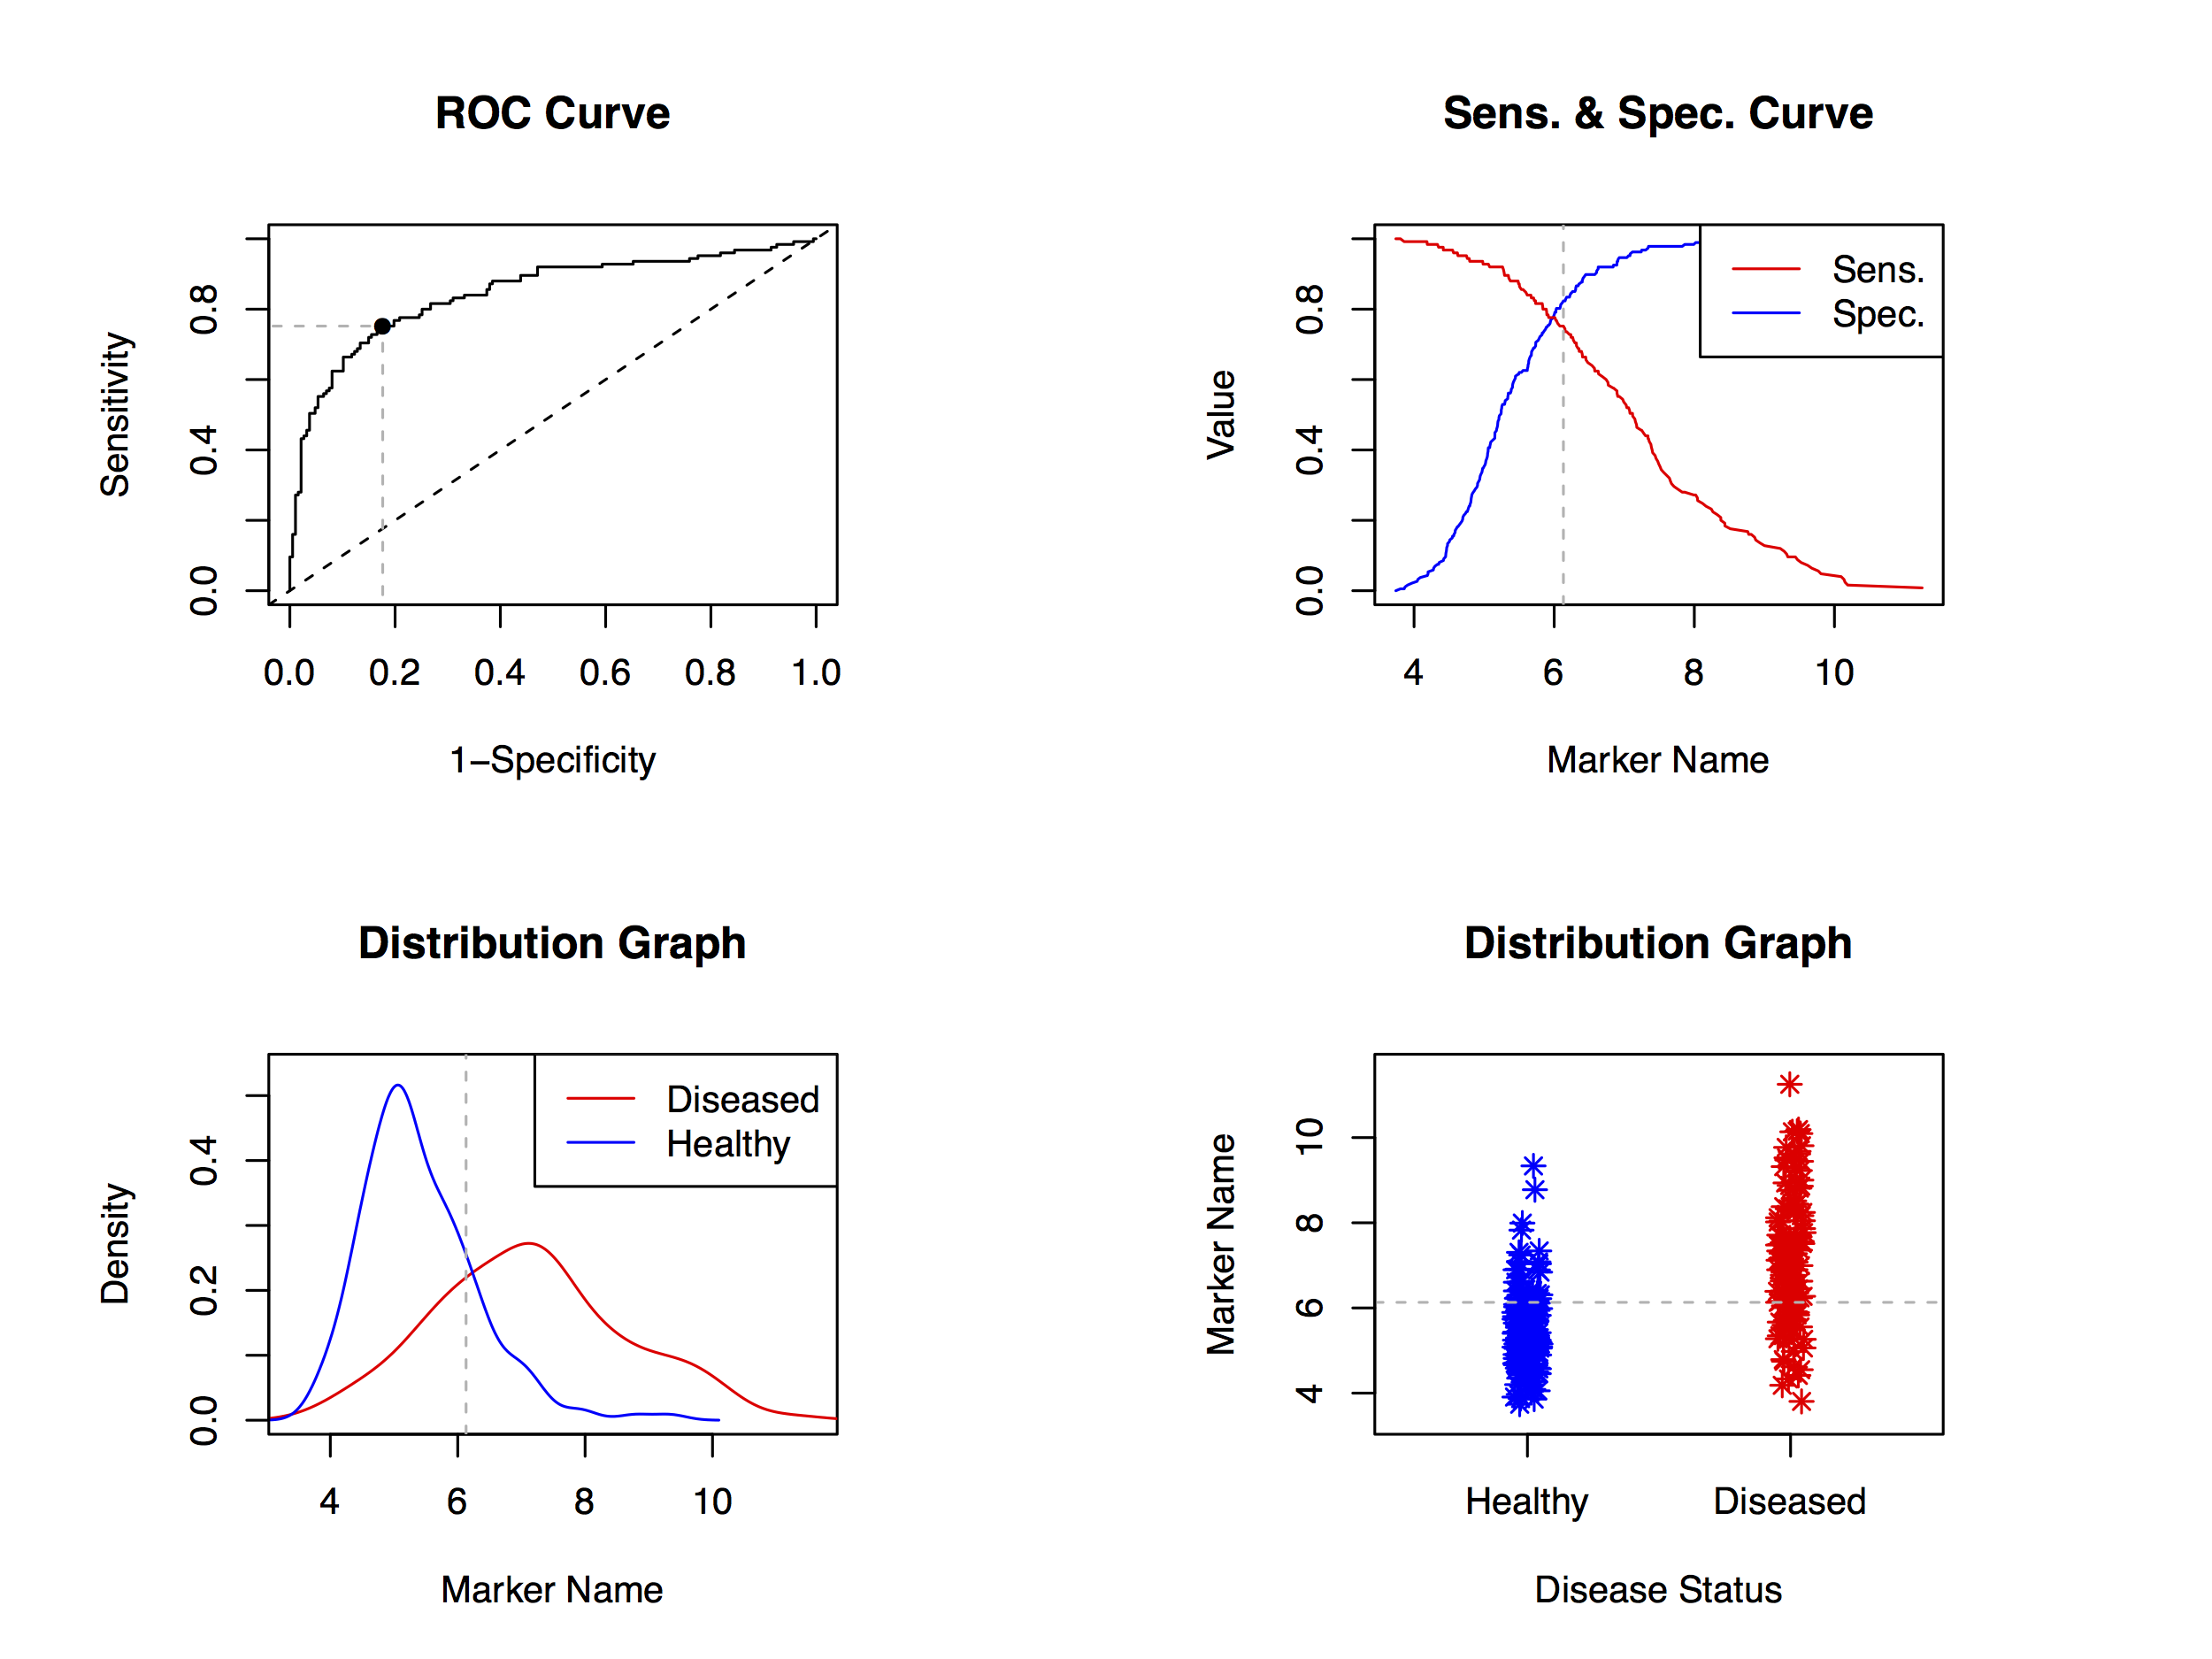 Easyroc A Web Tool For Roc Curve Analysis Ver 13